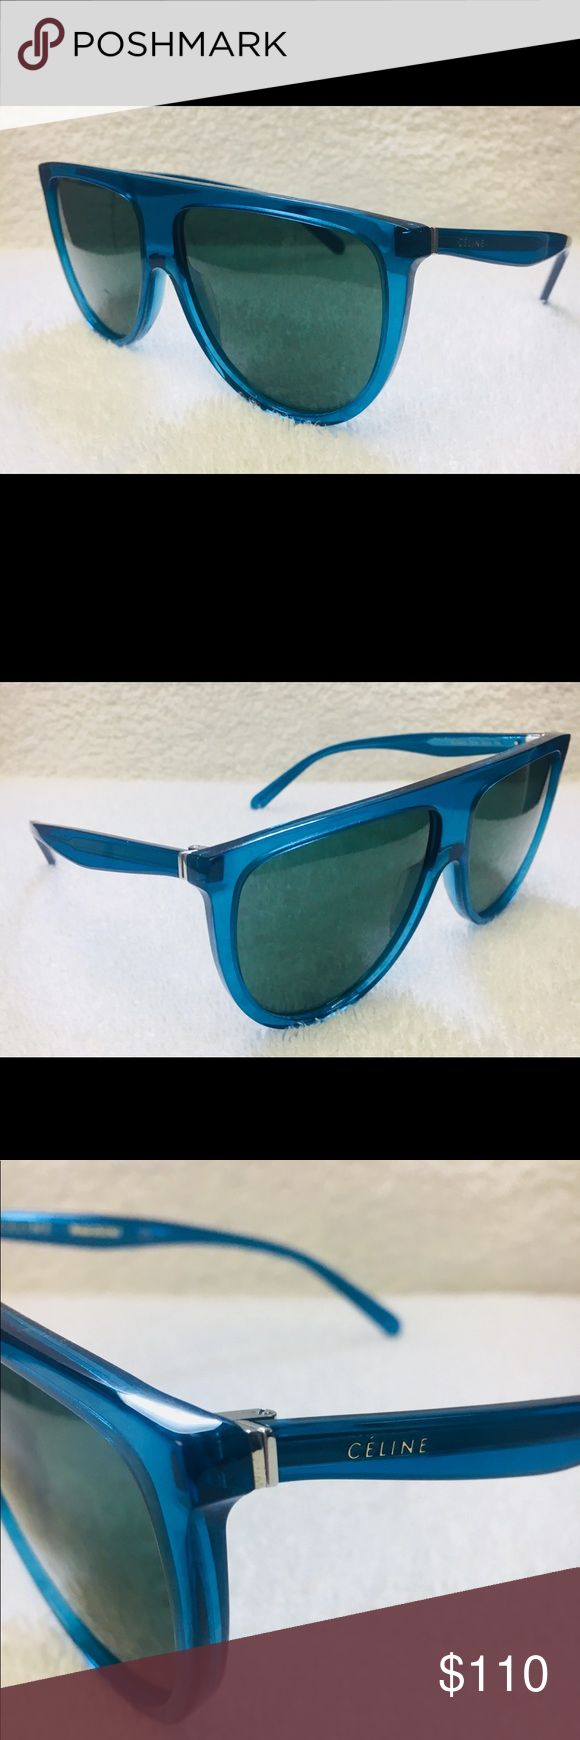 Celine CL41435/s Sunglasses in Turquoise Brand New 61/14/145  Original Céline THIN SHADOW CL 41435/S Sunglasses. women's model , geometric shape, 2018 Céline collection. acetate-rimmed glasses, turquoise/dark brown shaded colour. Sophisticated, inspiring, visionary. This is what the Céline eyewear collection is about, expressing the essence of the 21st-century woman. Vintage models which reveal a timeless elegance. Minimalism with a twist to show who you are. Frames are oversized, with…